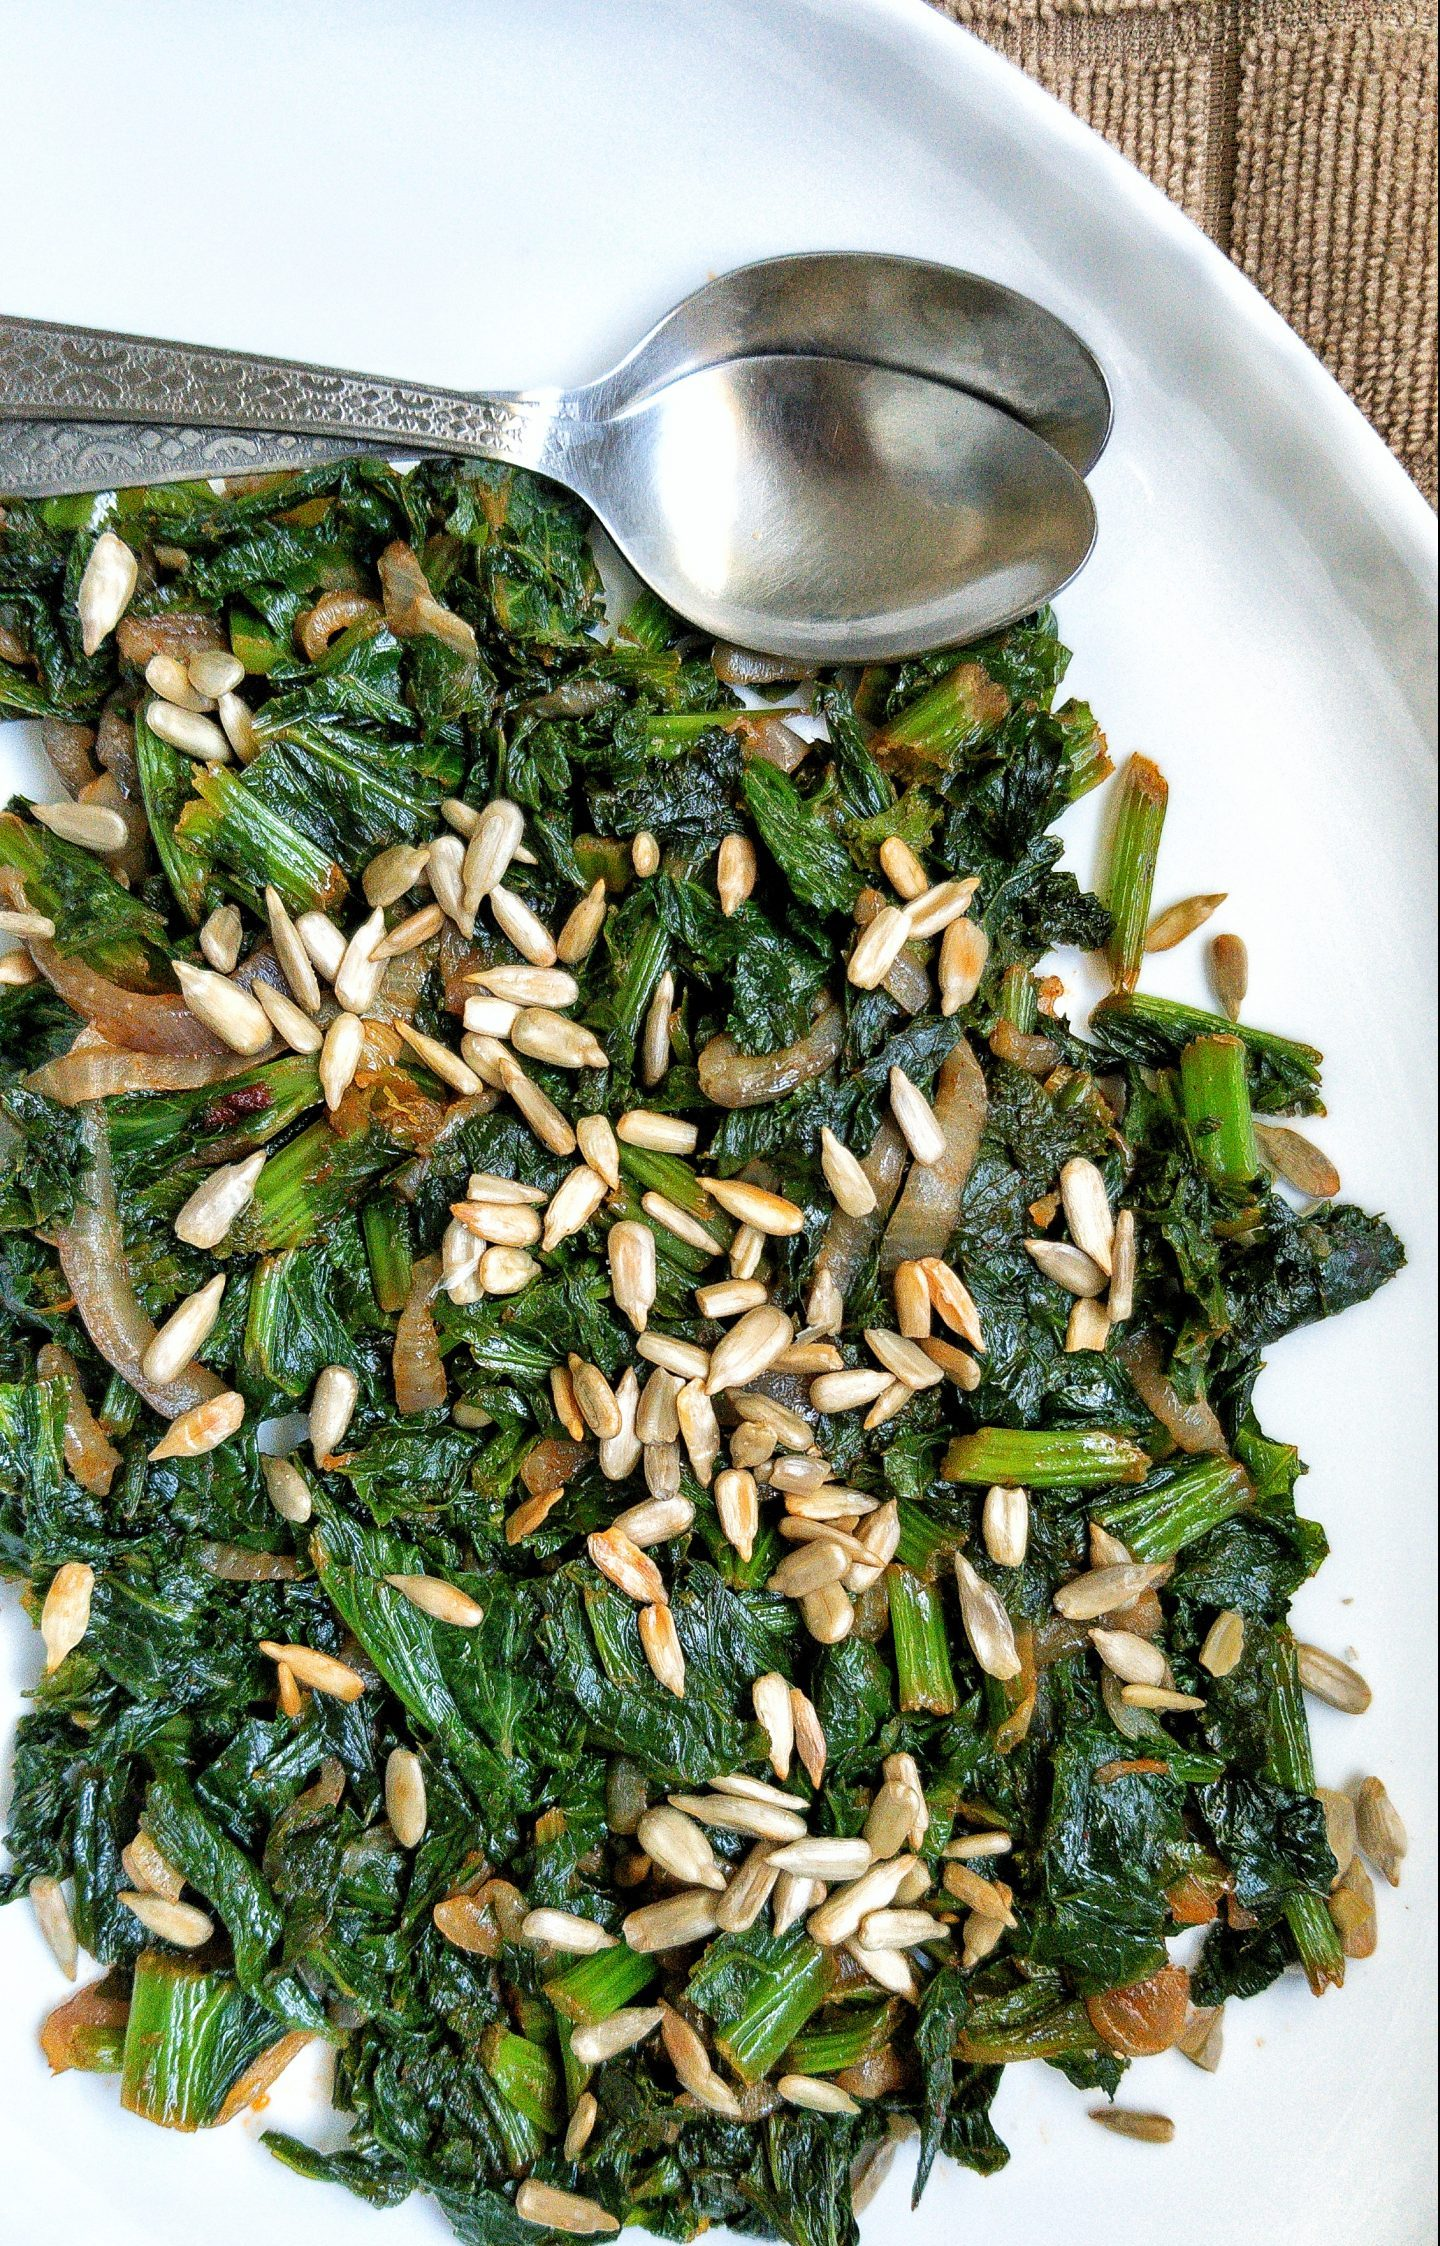 Pan-cooked curly mustard greens with lightly salted roasted sunflower seeds